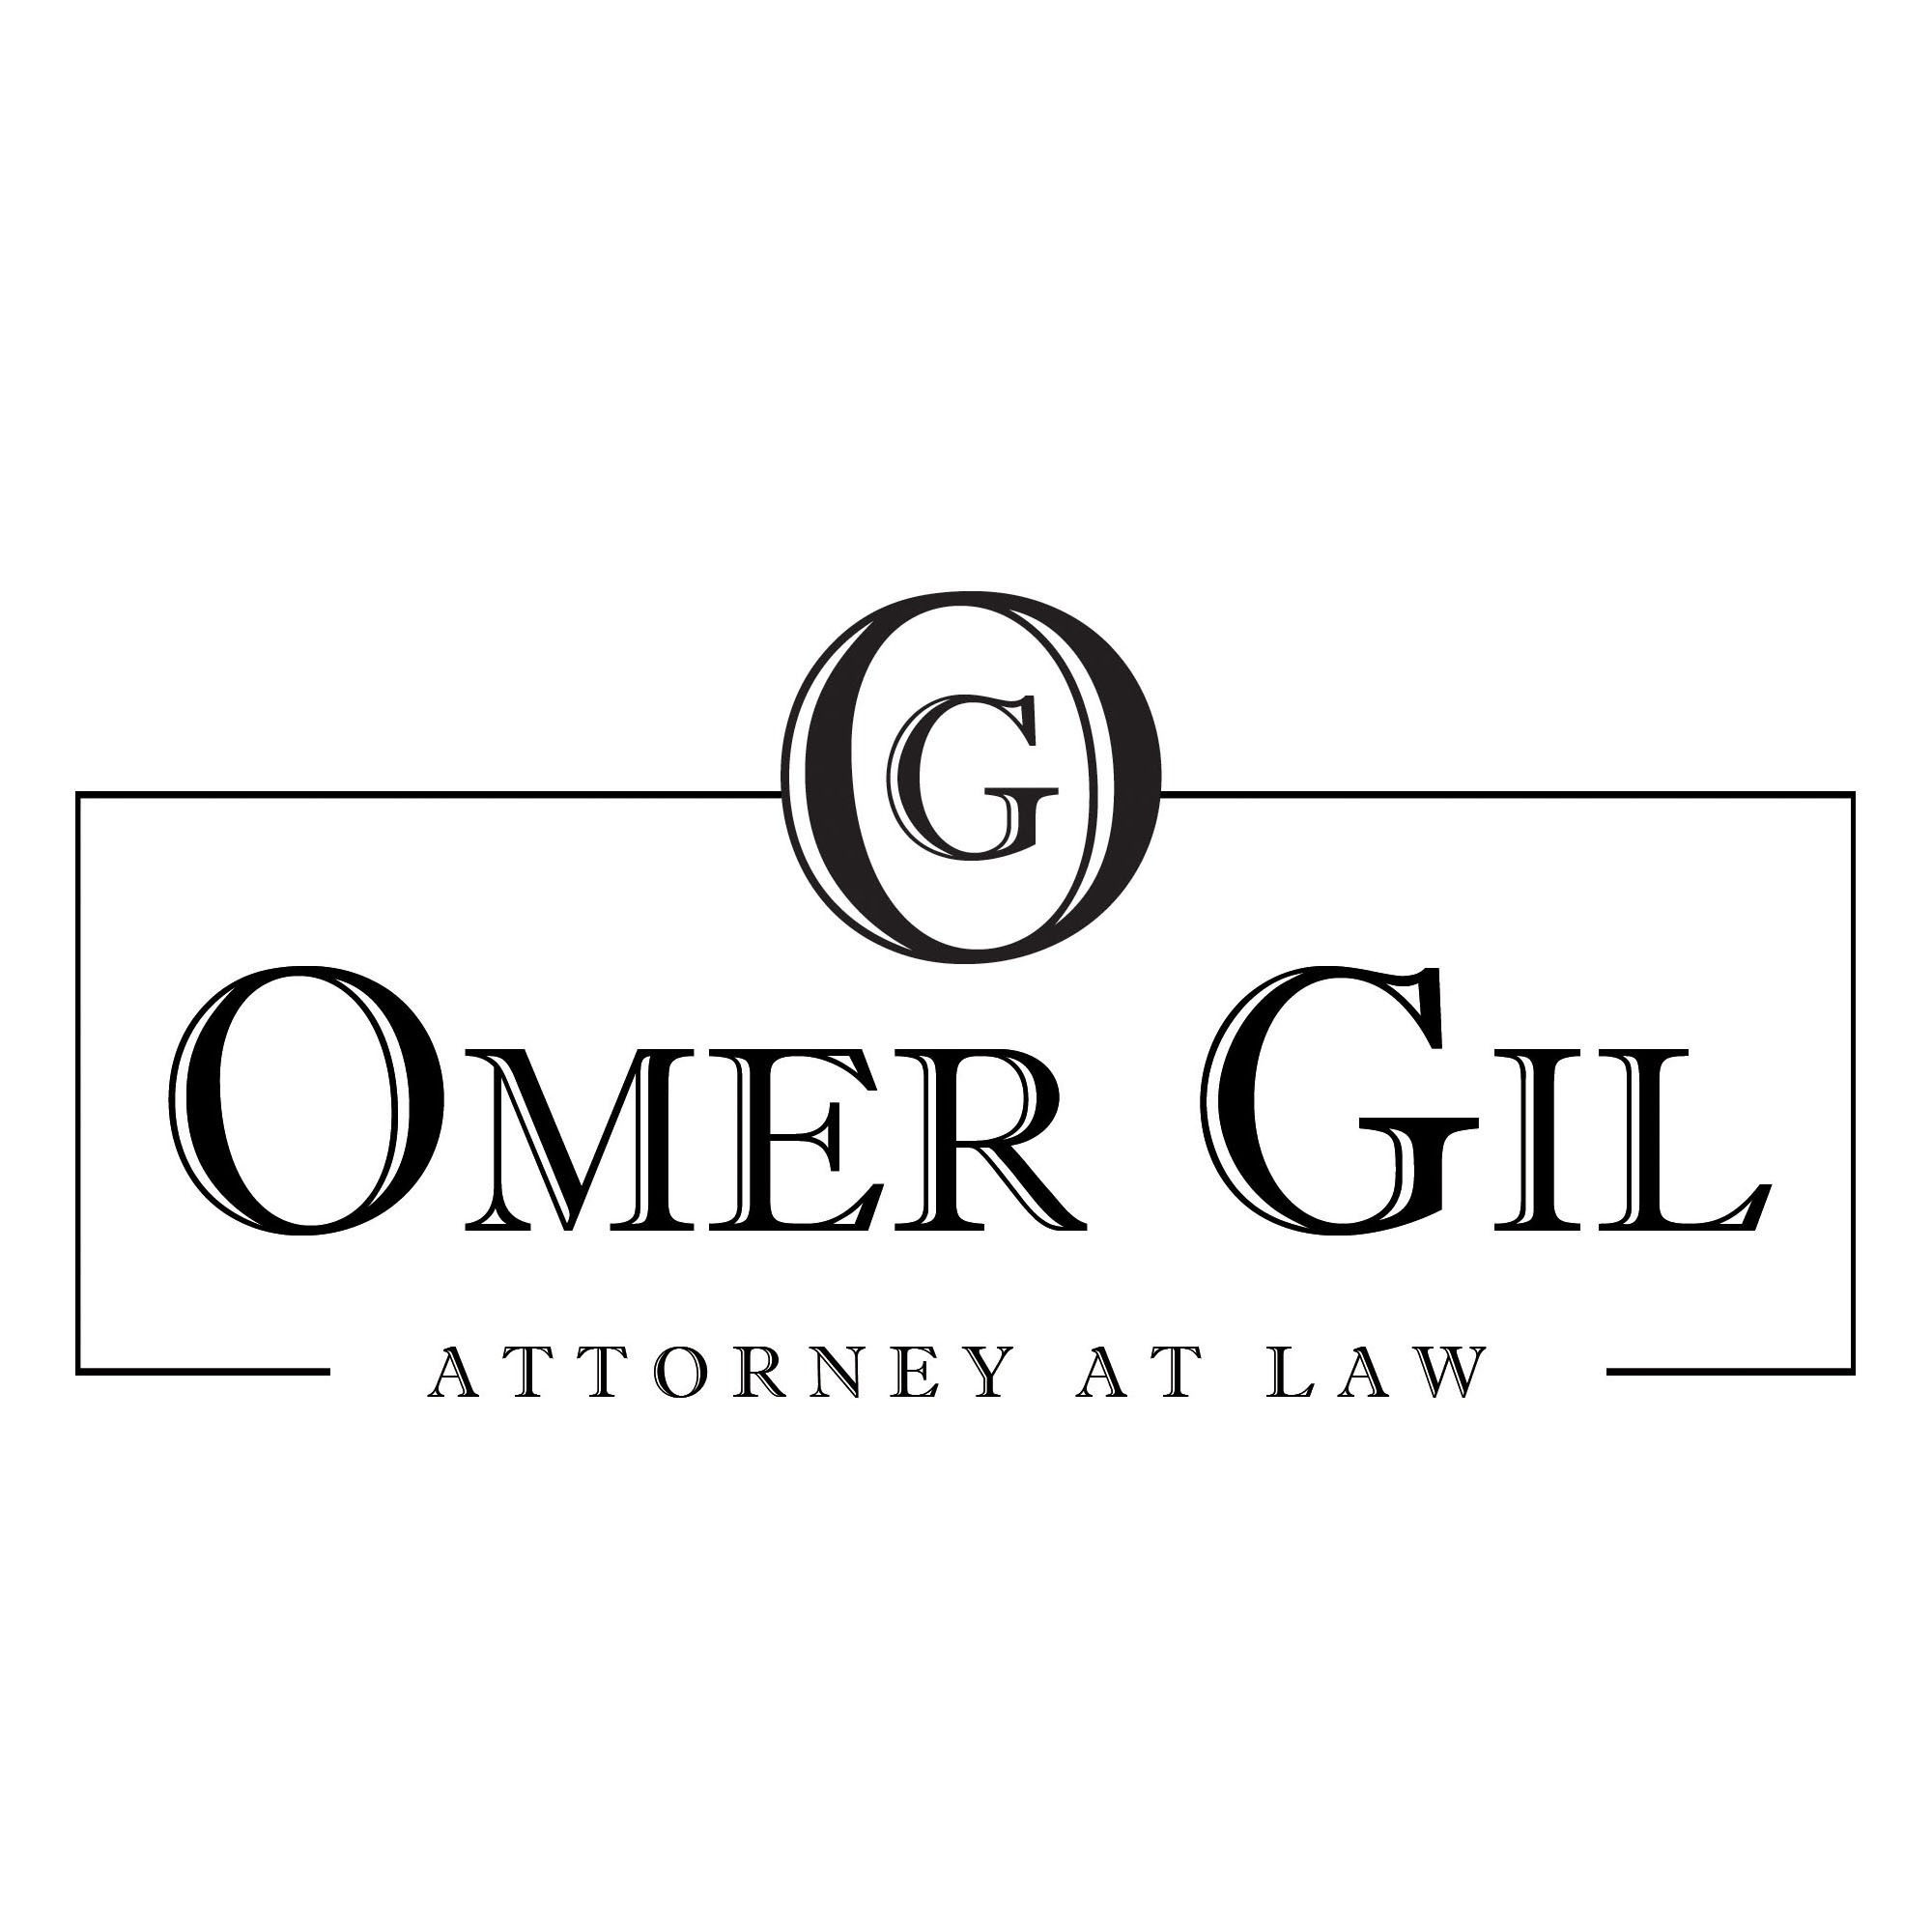 Omer Gil - Attorney at Law